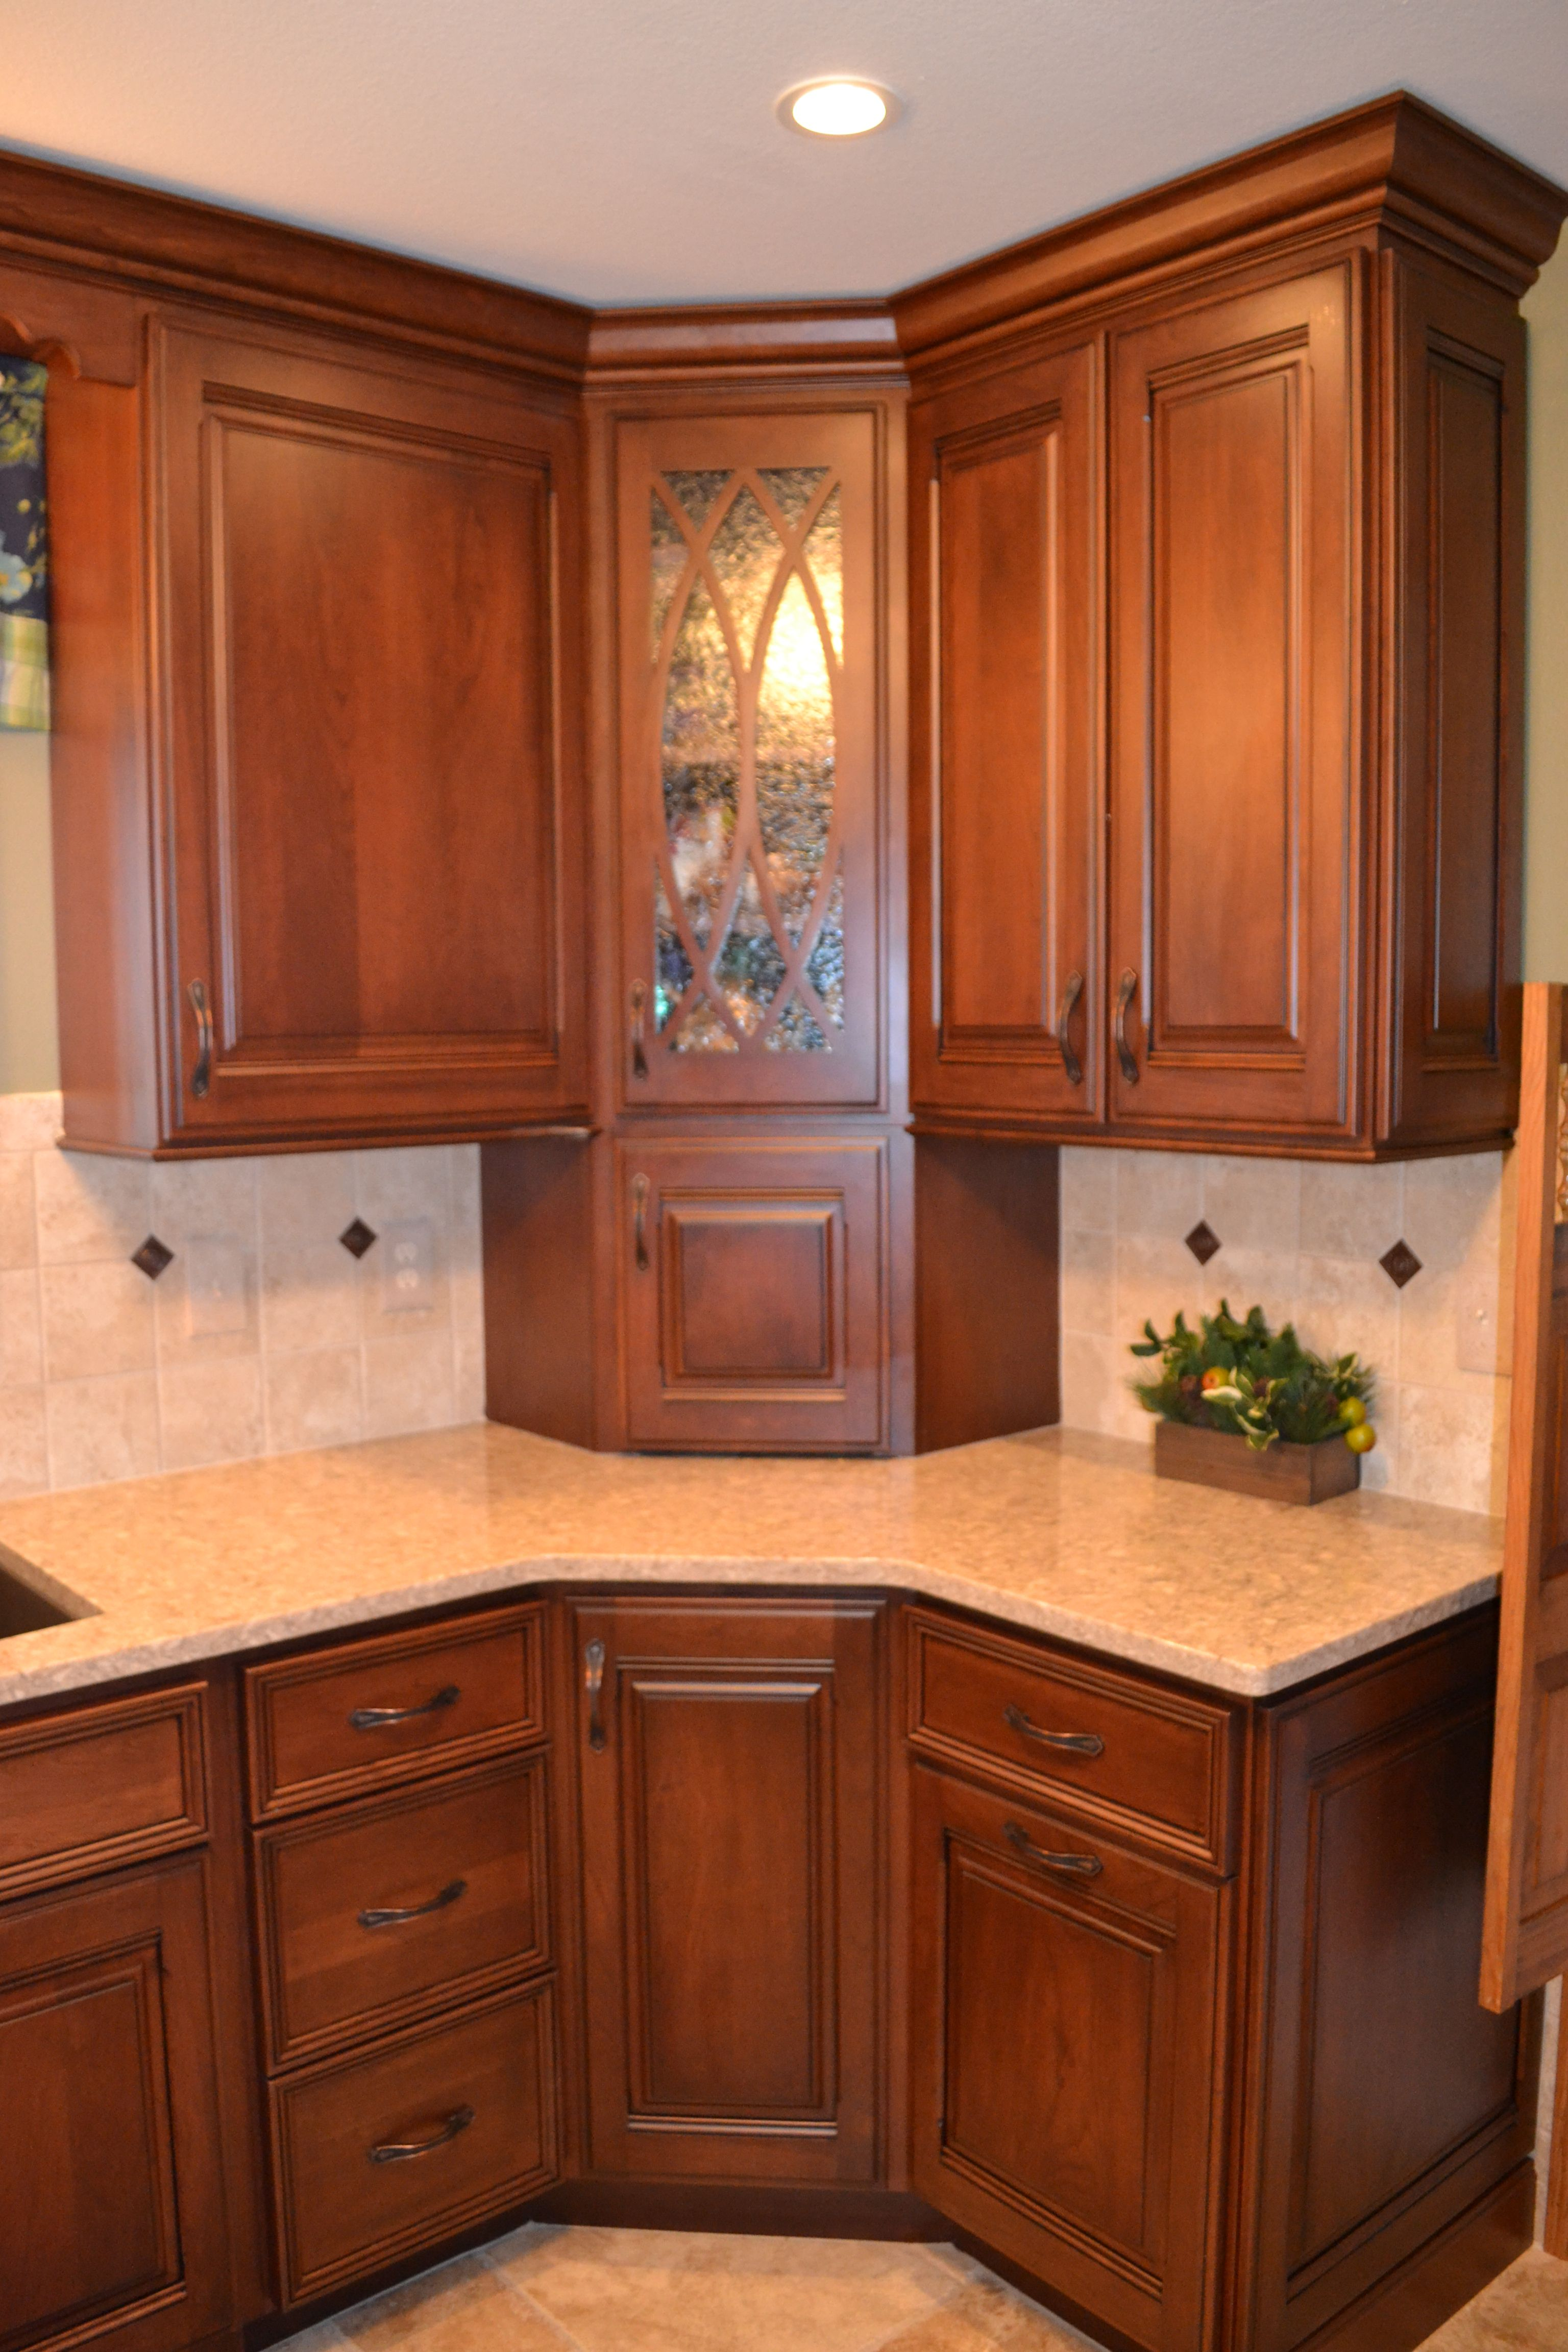 changing up the corner cabinetry corner cabinets glass inlay cabinets corner kitchen on kitchen cabinets corner id=54220